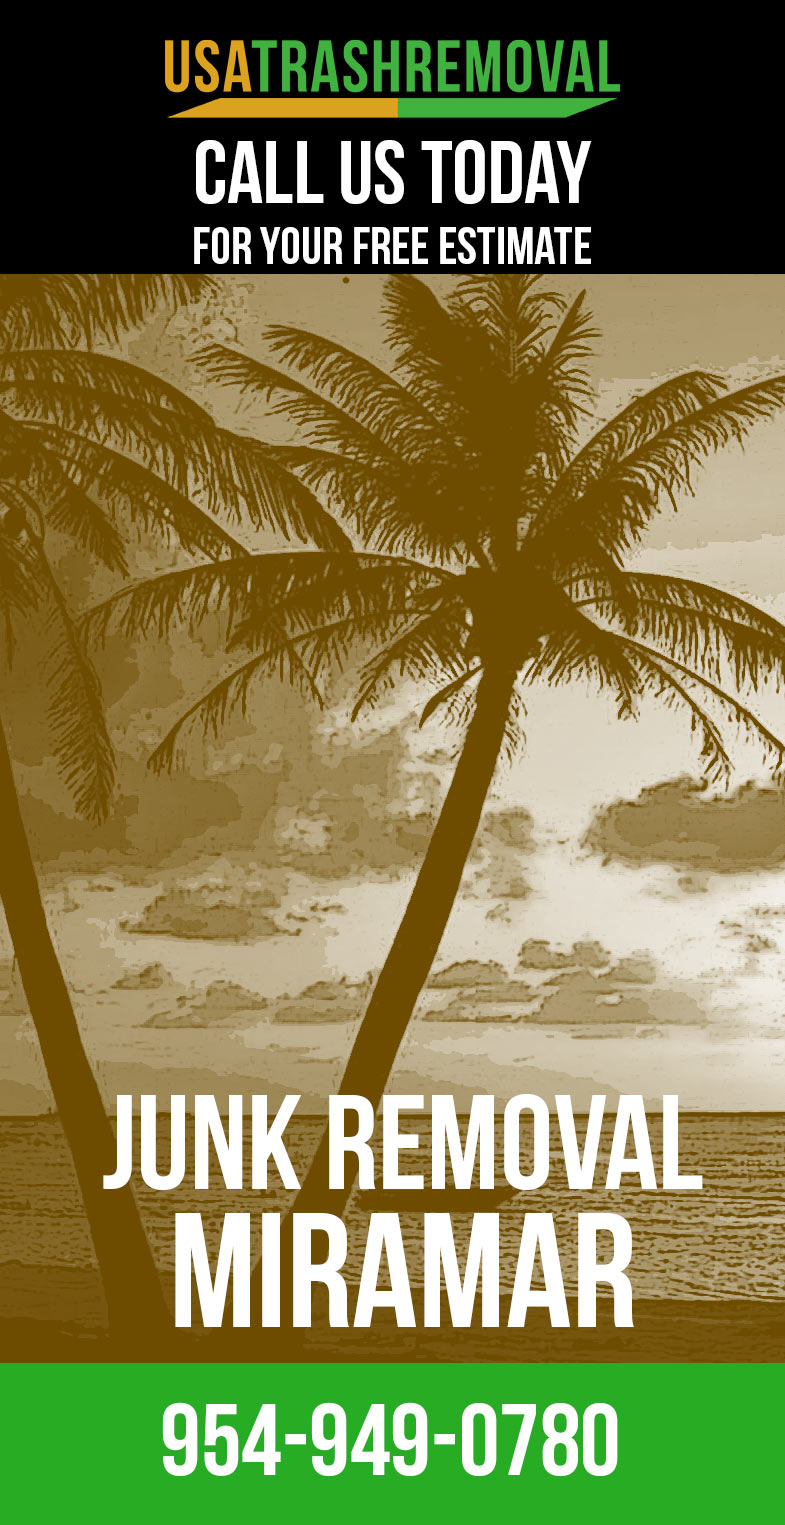 Junk Removal Miramar - Trash Pick Up